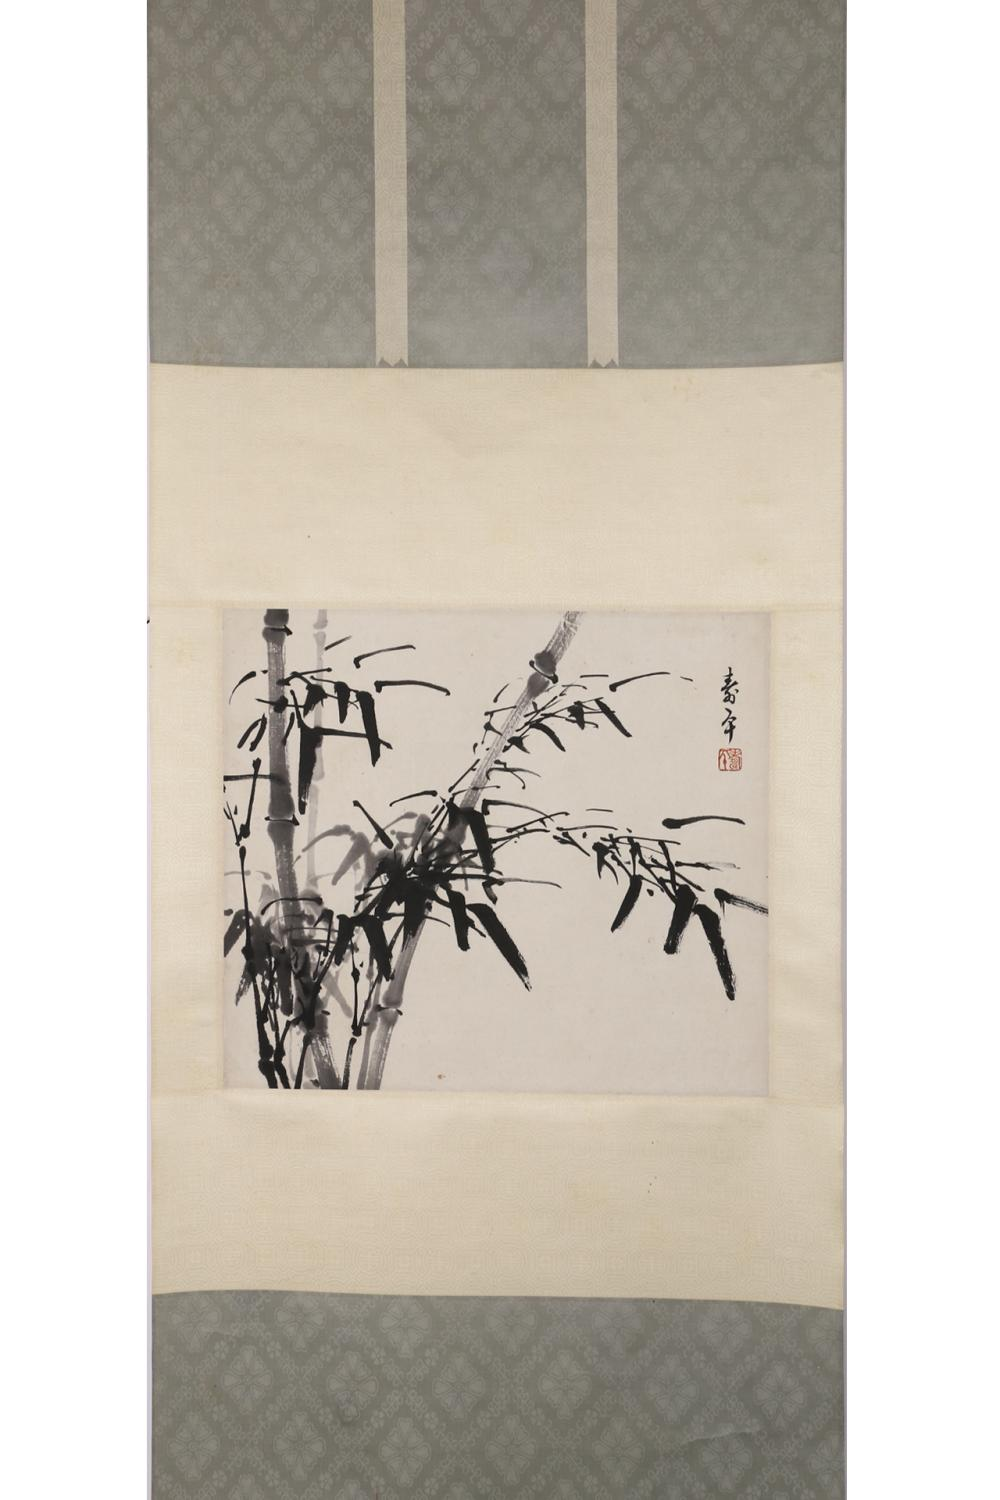 CHINESE INK HANGING SCROLL PAINTING OF BAMBOO